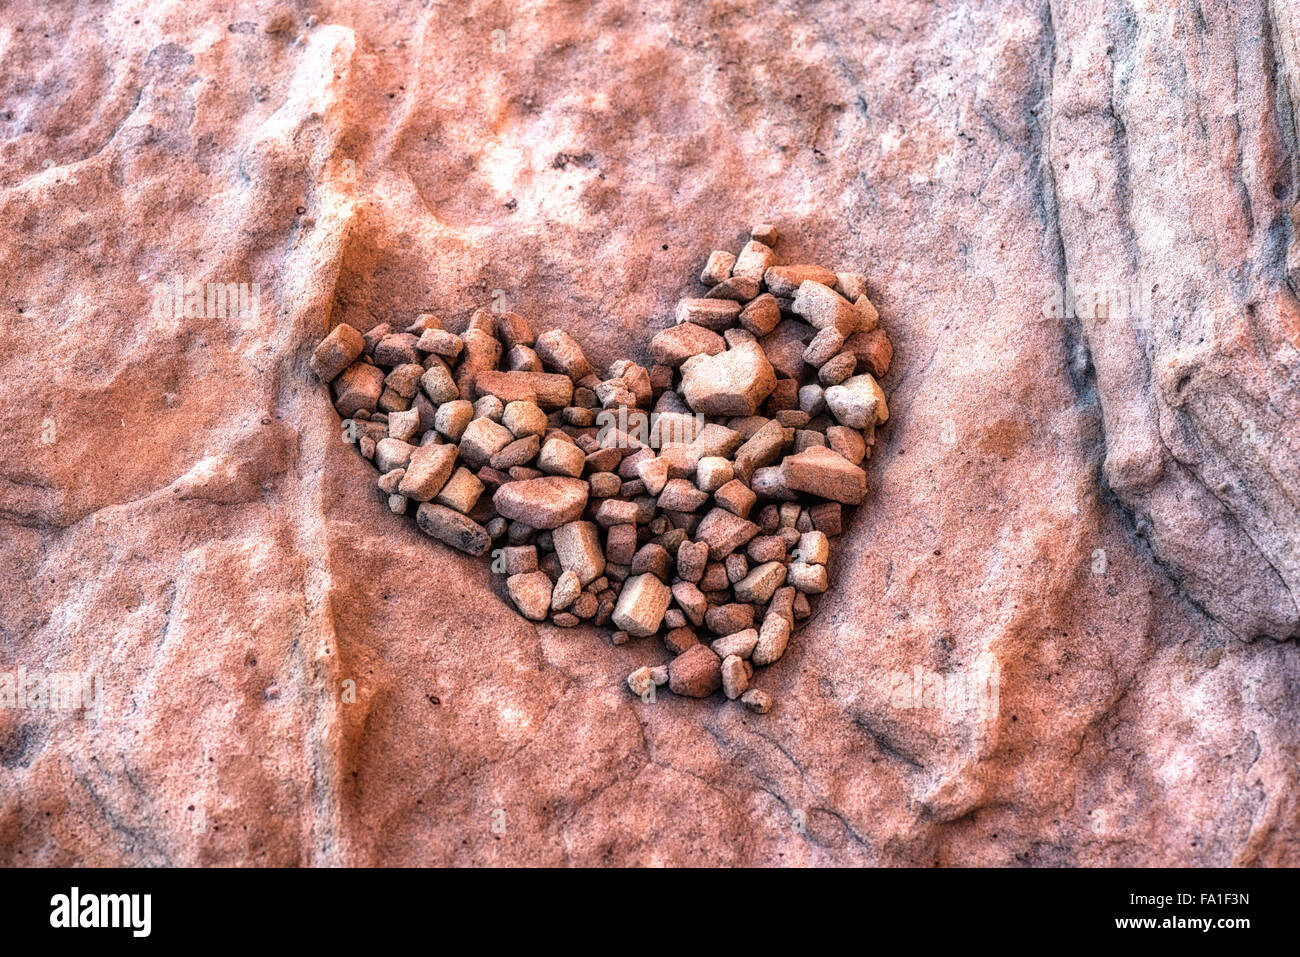 Small rocks formed into the shape of a heart. - Stock Image